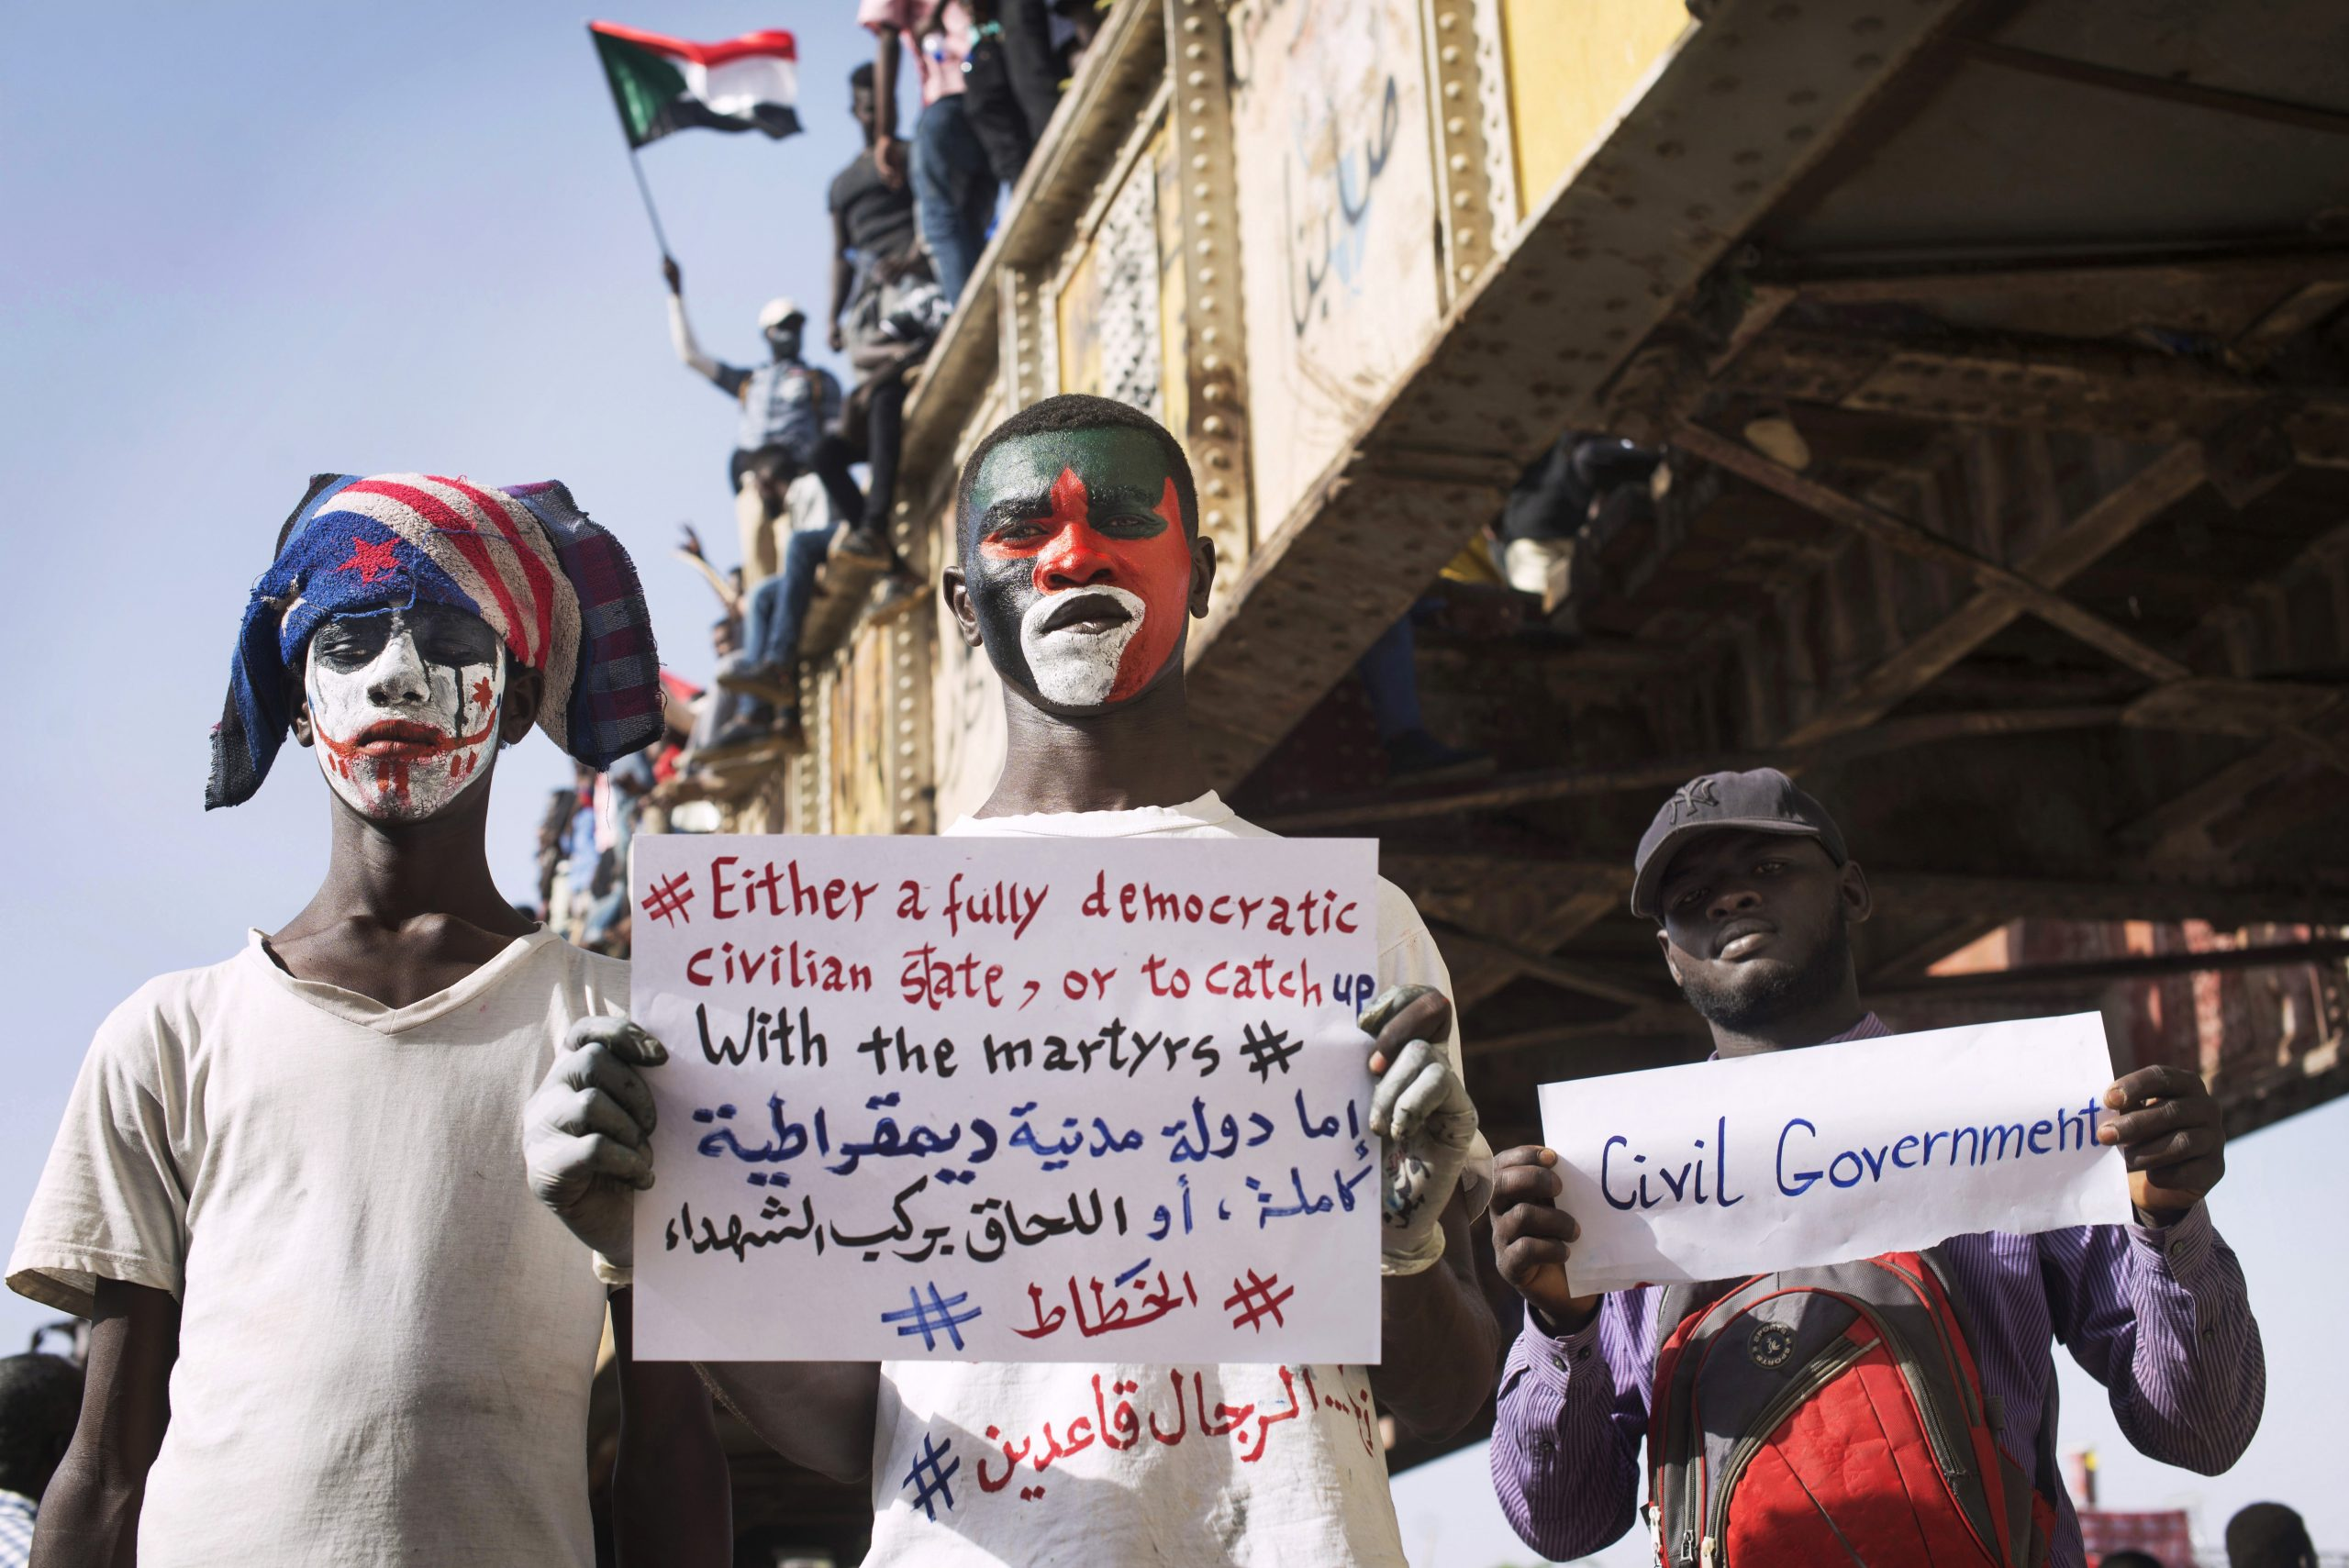 Sudan Two Years Post-Bashir: Progress Made but More to Be Done